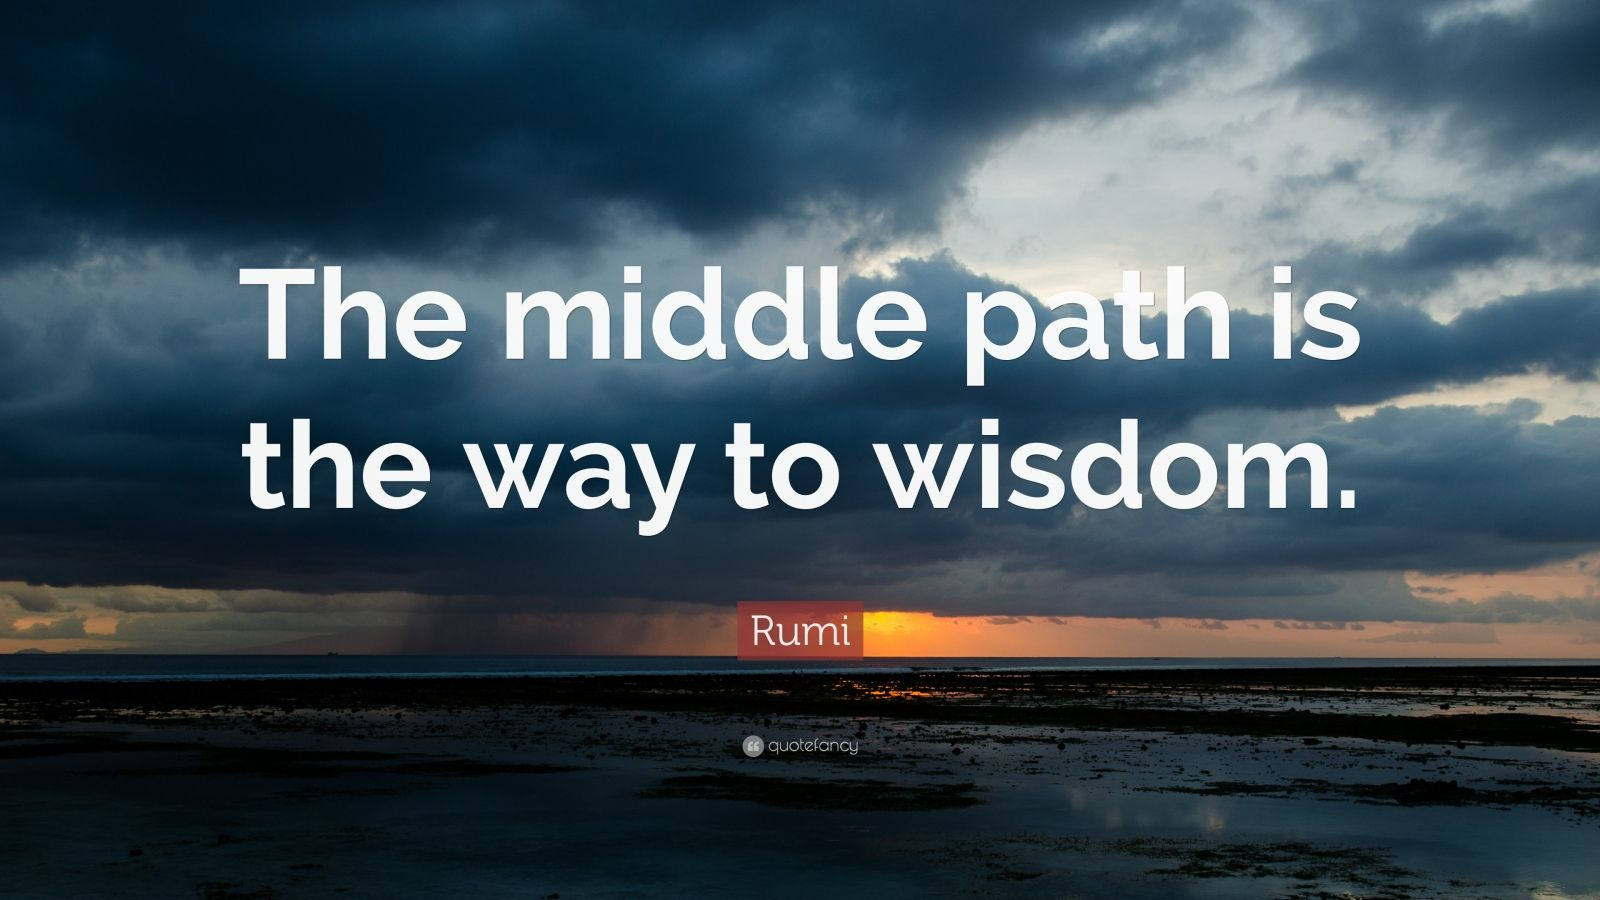 Theodore Roosevelt Wallpaper Quote Rumi Quote The Middle Path Is The Way To Wisdom 12